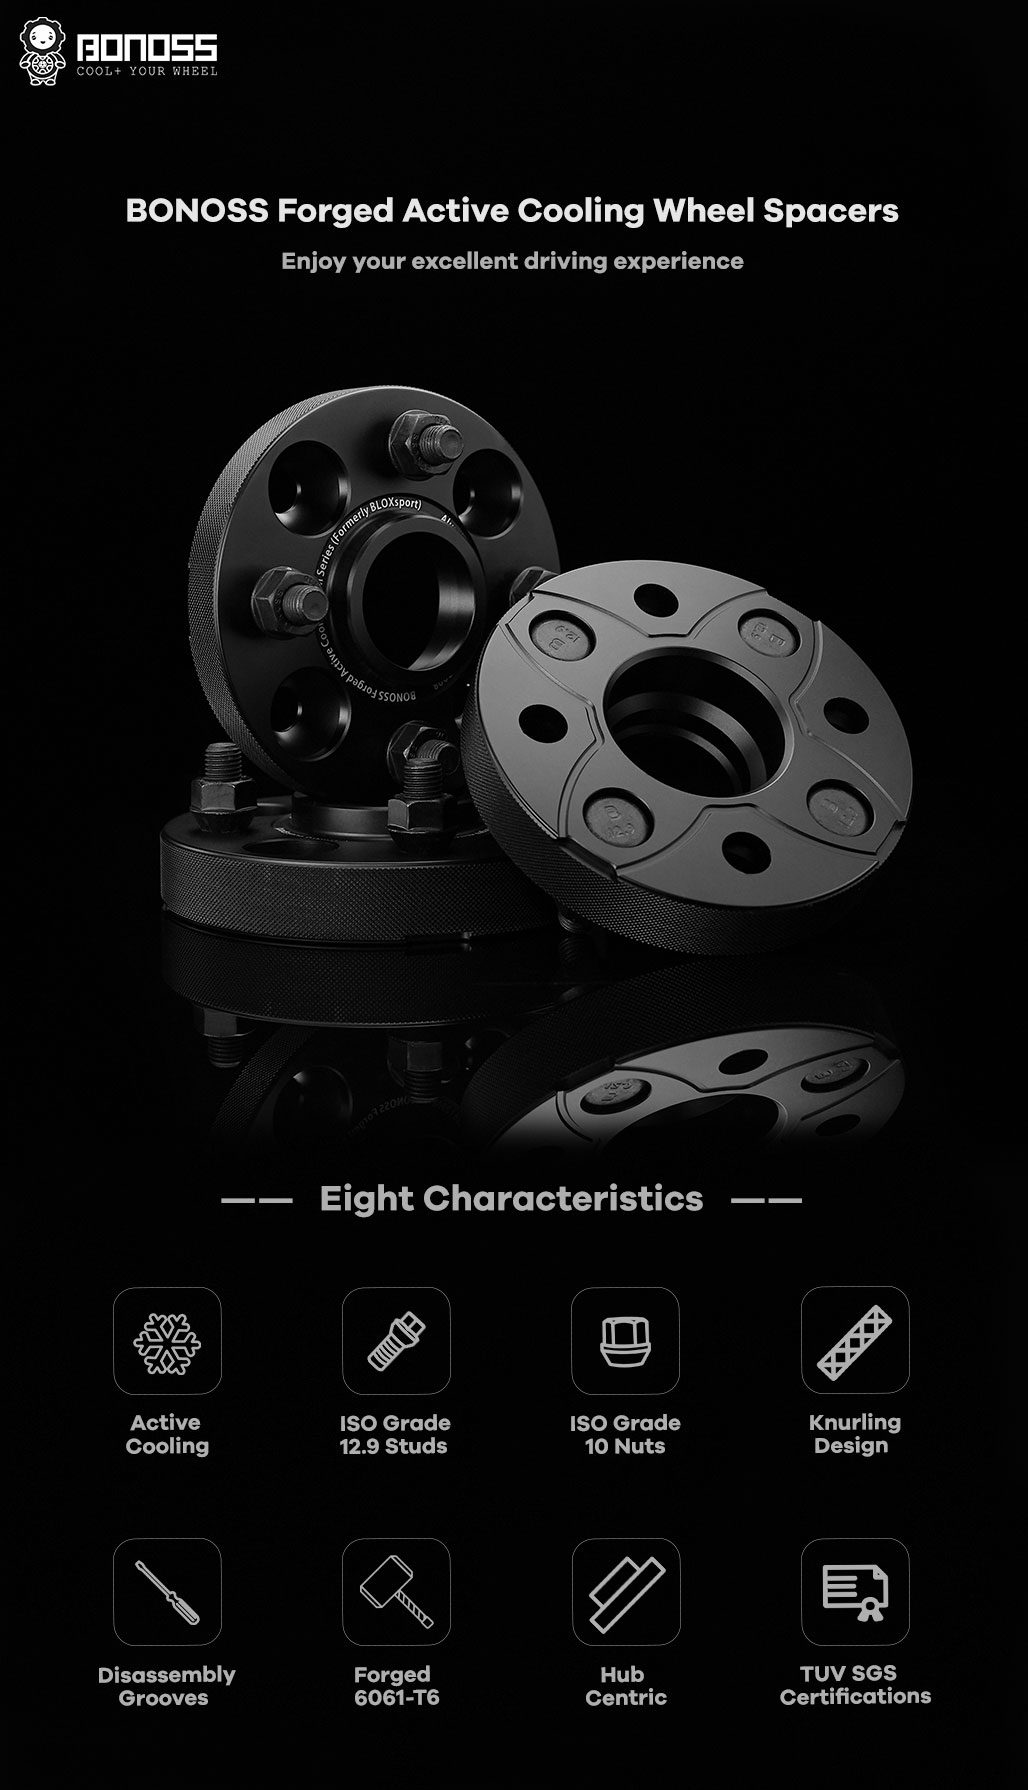 BONOSS-forged-active-cooling-wheel-spacer-mitsubishi-mirage-4x100-56.1-M12x1.5-6061T6-by-grace-1